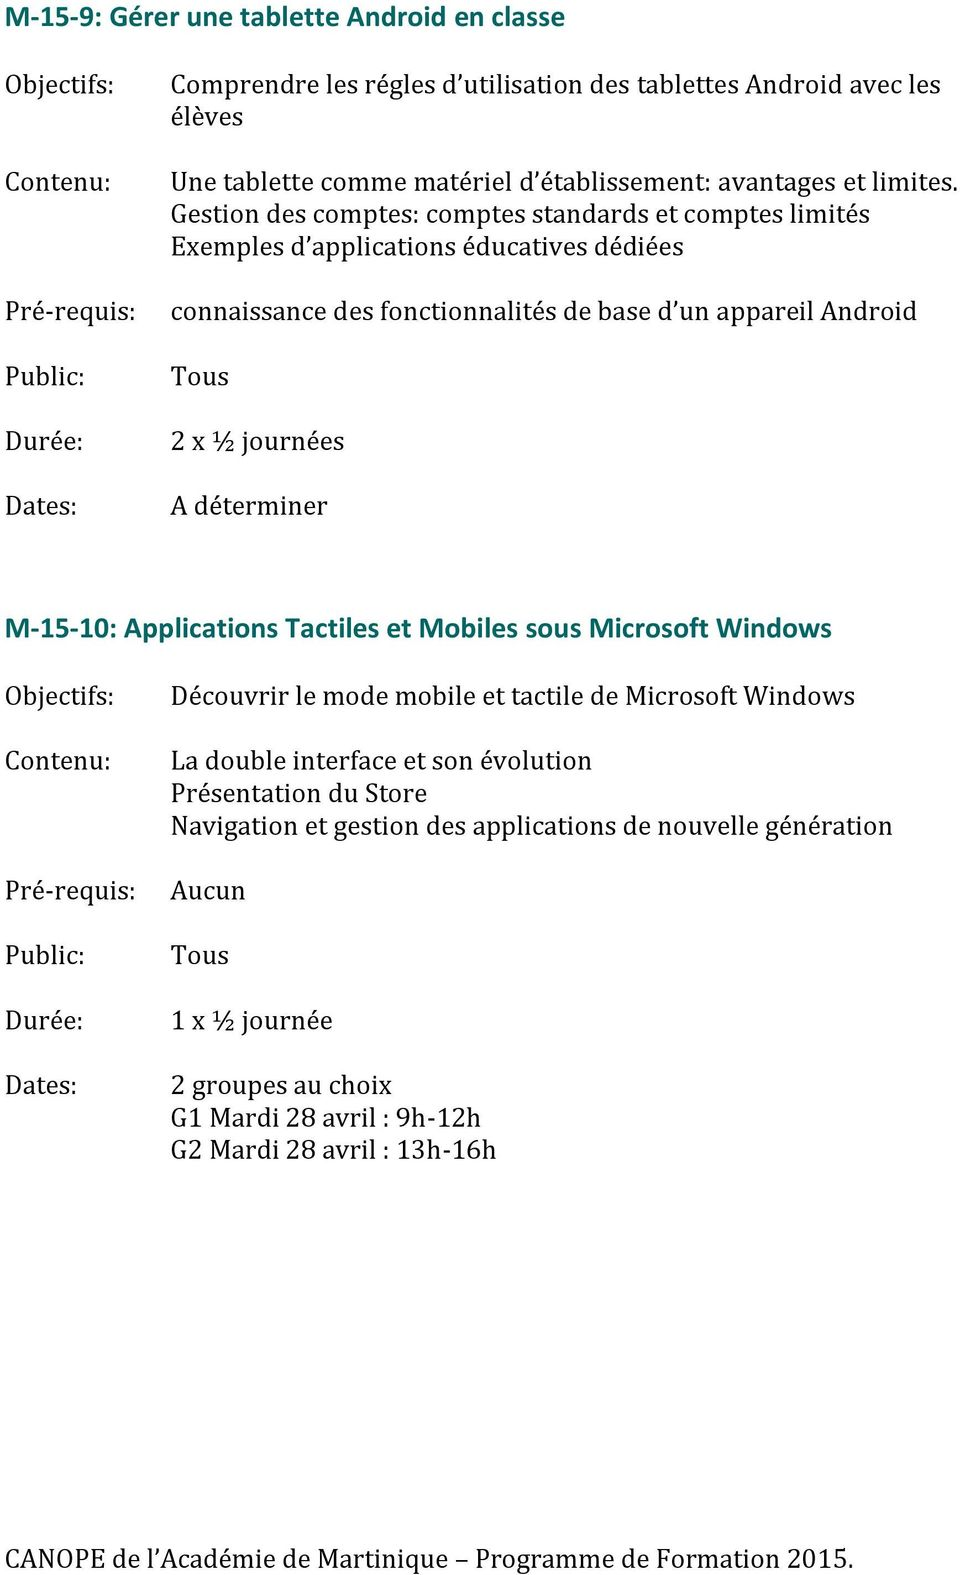 Gestion des comptes: comptes standards et comptes limités Exemples d applications éducatives dédiées connaissance des fonctionnalités de base d un appareil Android 2 x ½